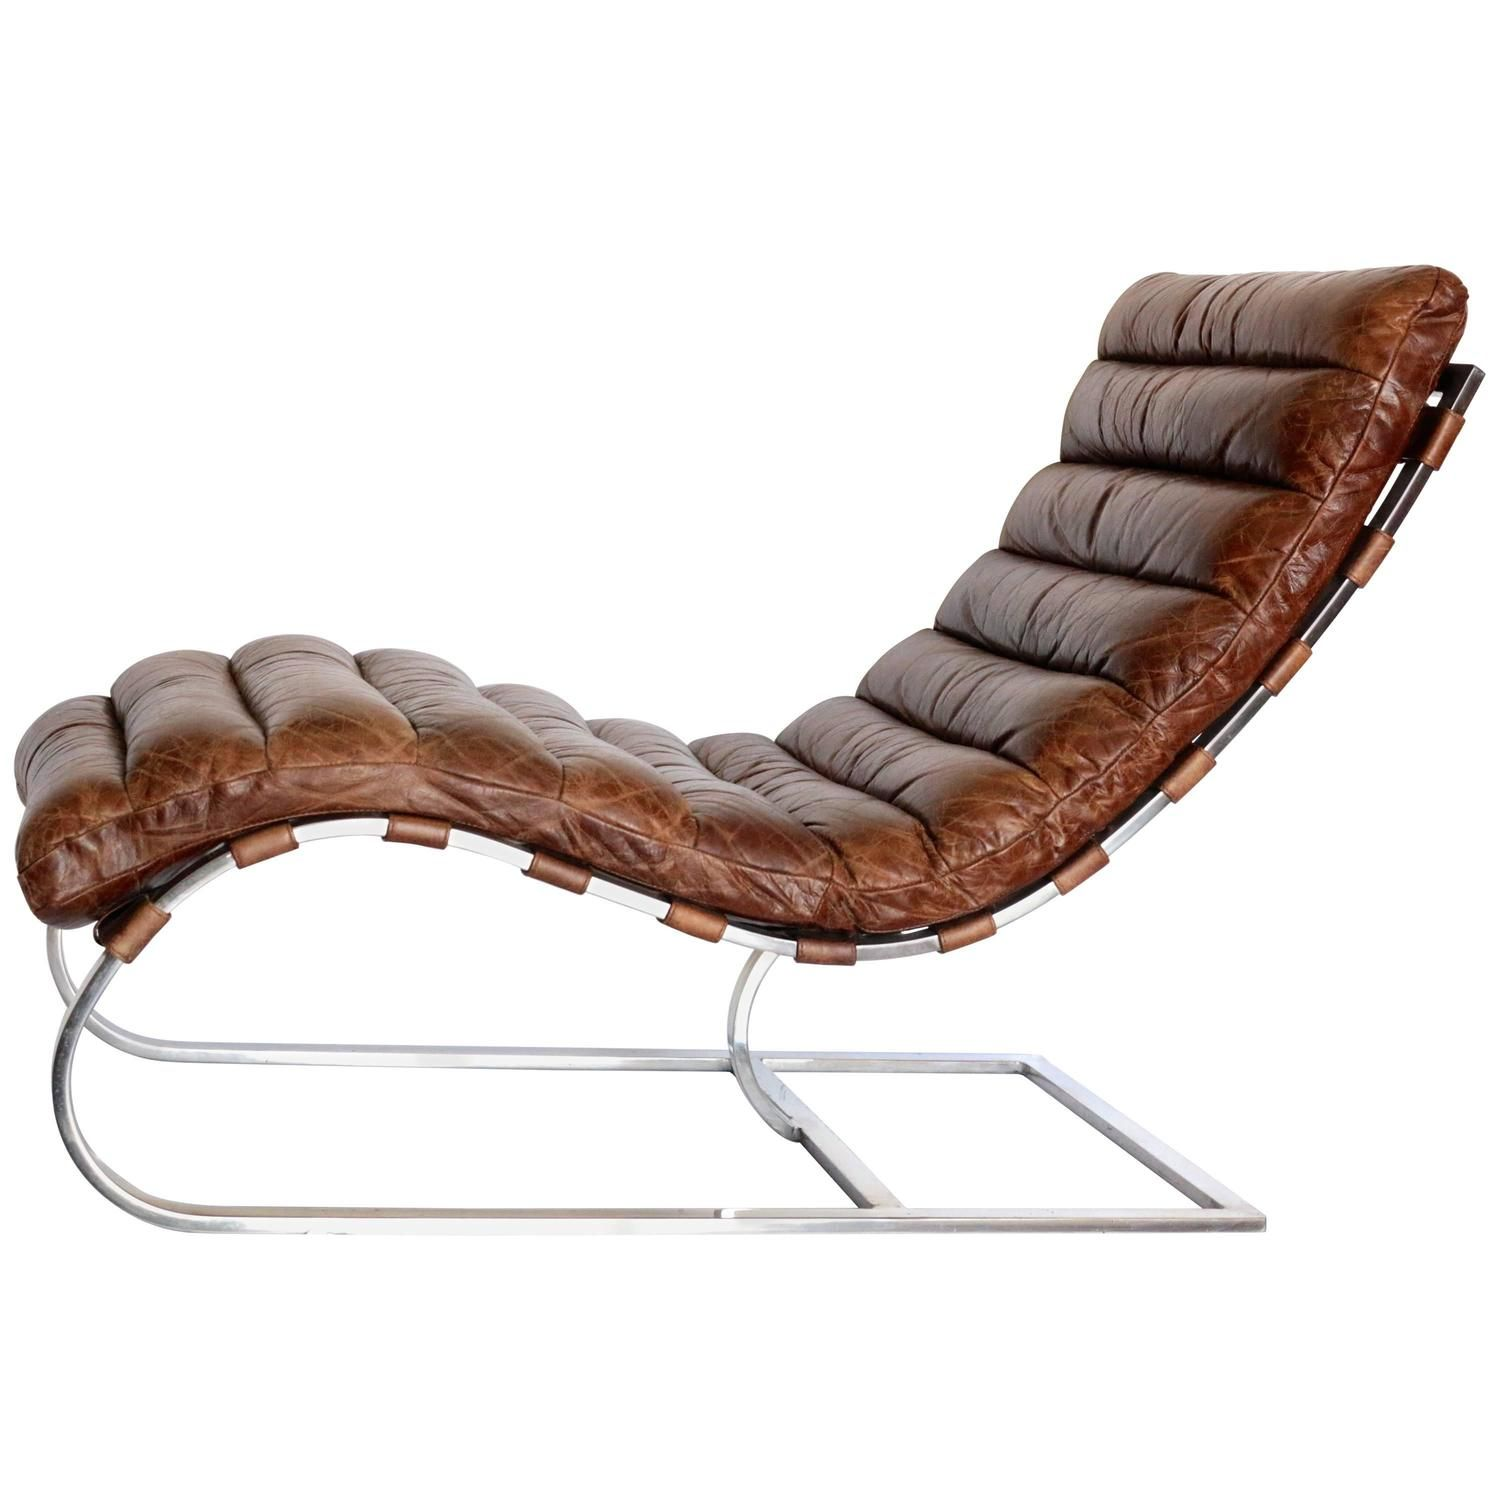 - French Distressed Tufted Leather Chaise Longue Chair With Chrome